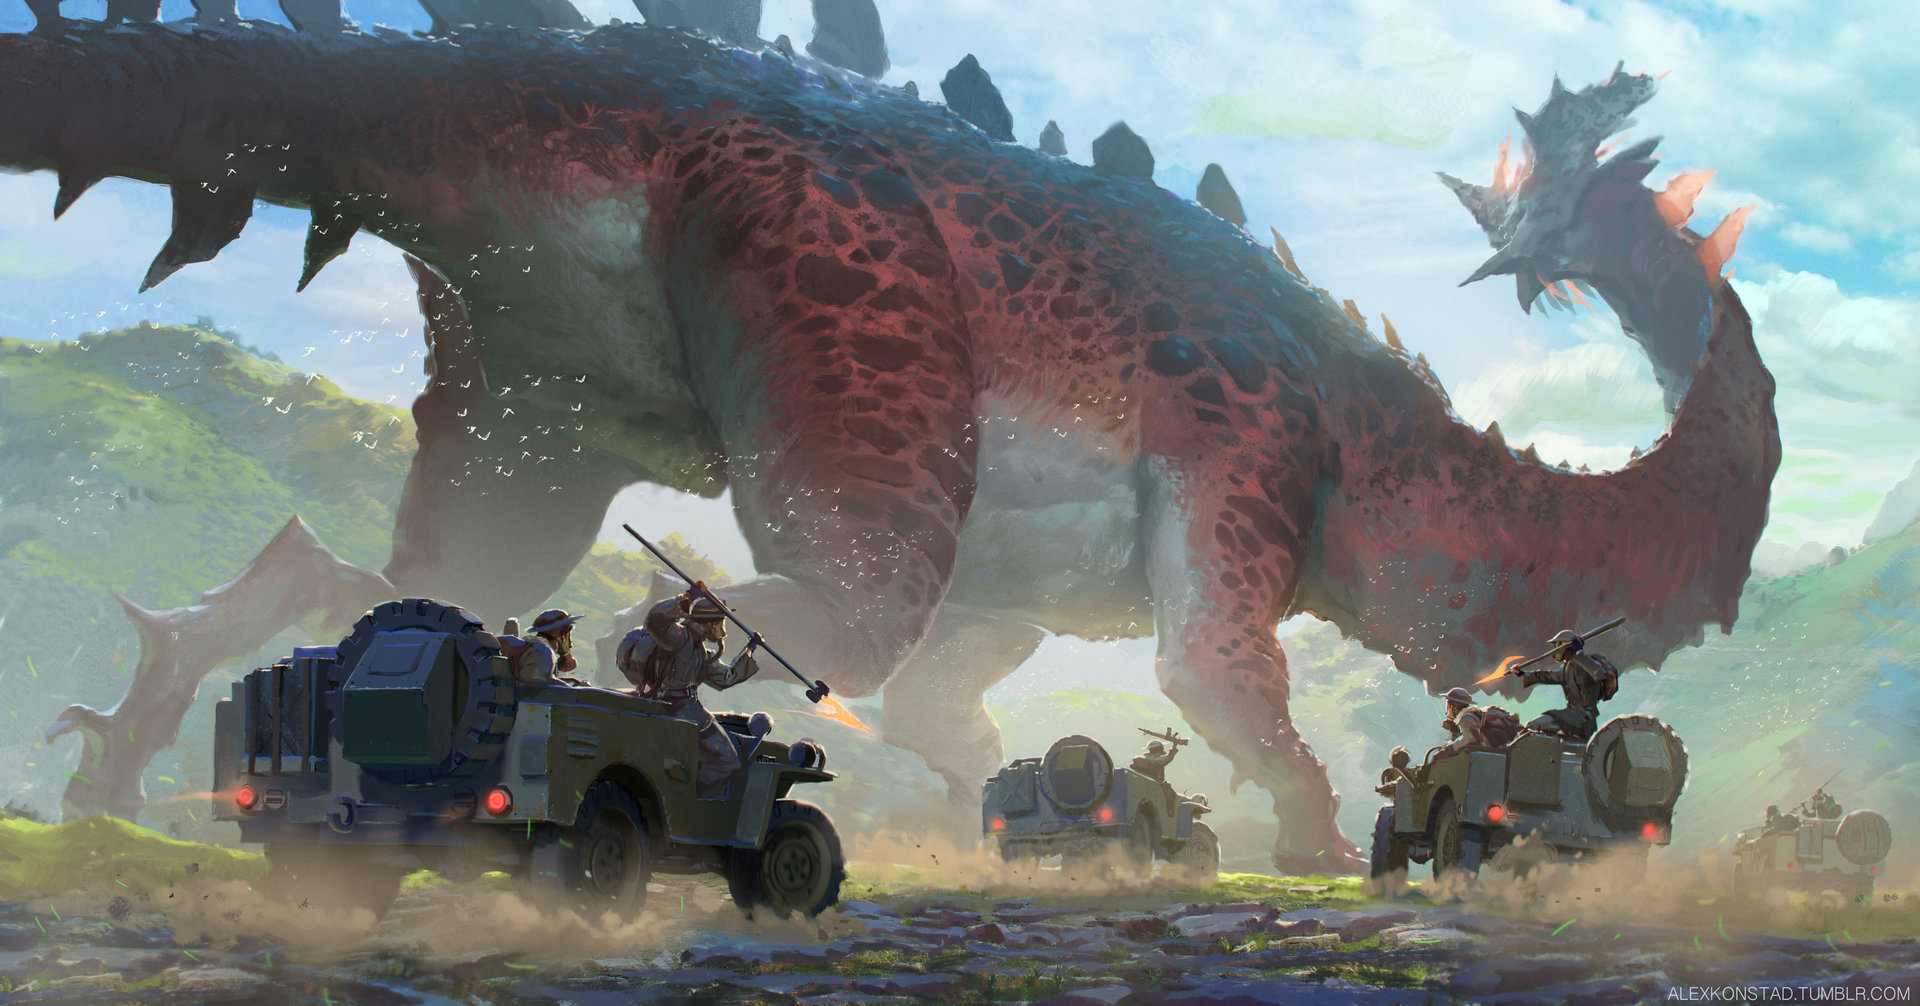 Alex Konstad Digital Painting The Megasaur Poachers